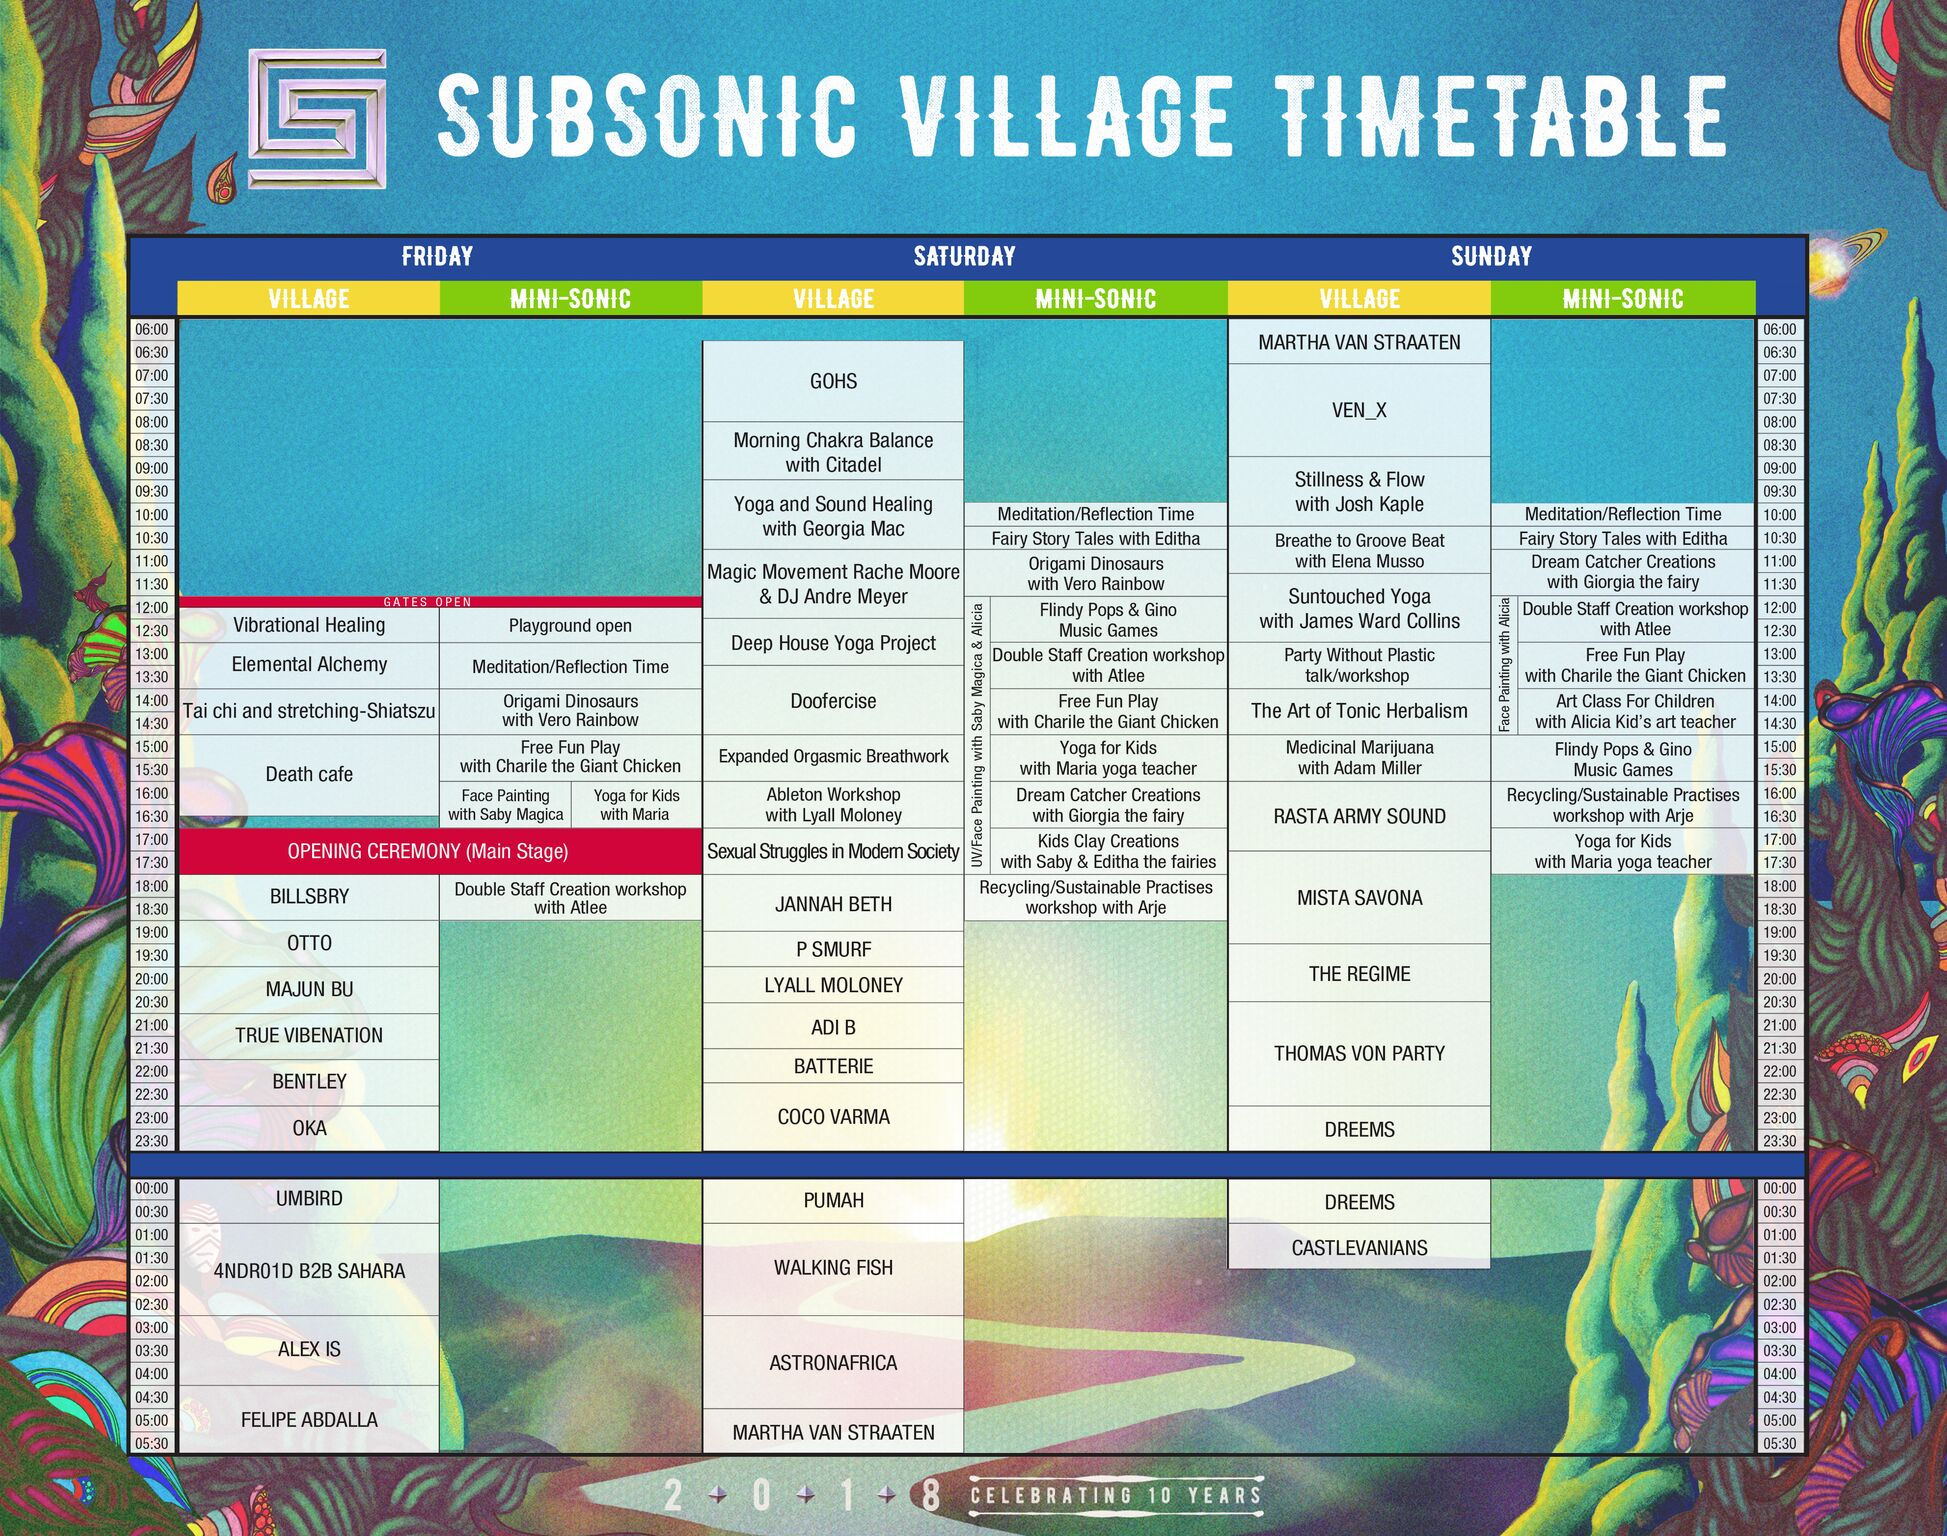 Subsonic Music Festival 2018 - Subsonic Village Timetable></p> </div>     	</div>     </article> </div><!-- inner --> </main>   <footer> <div class=